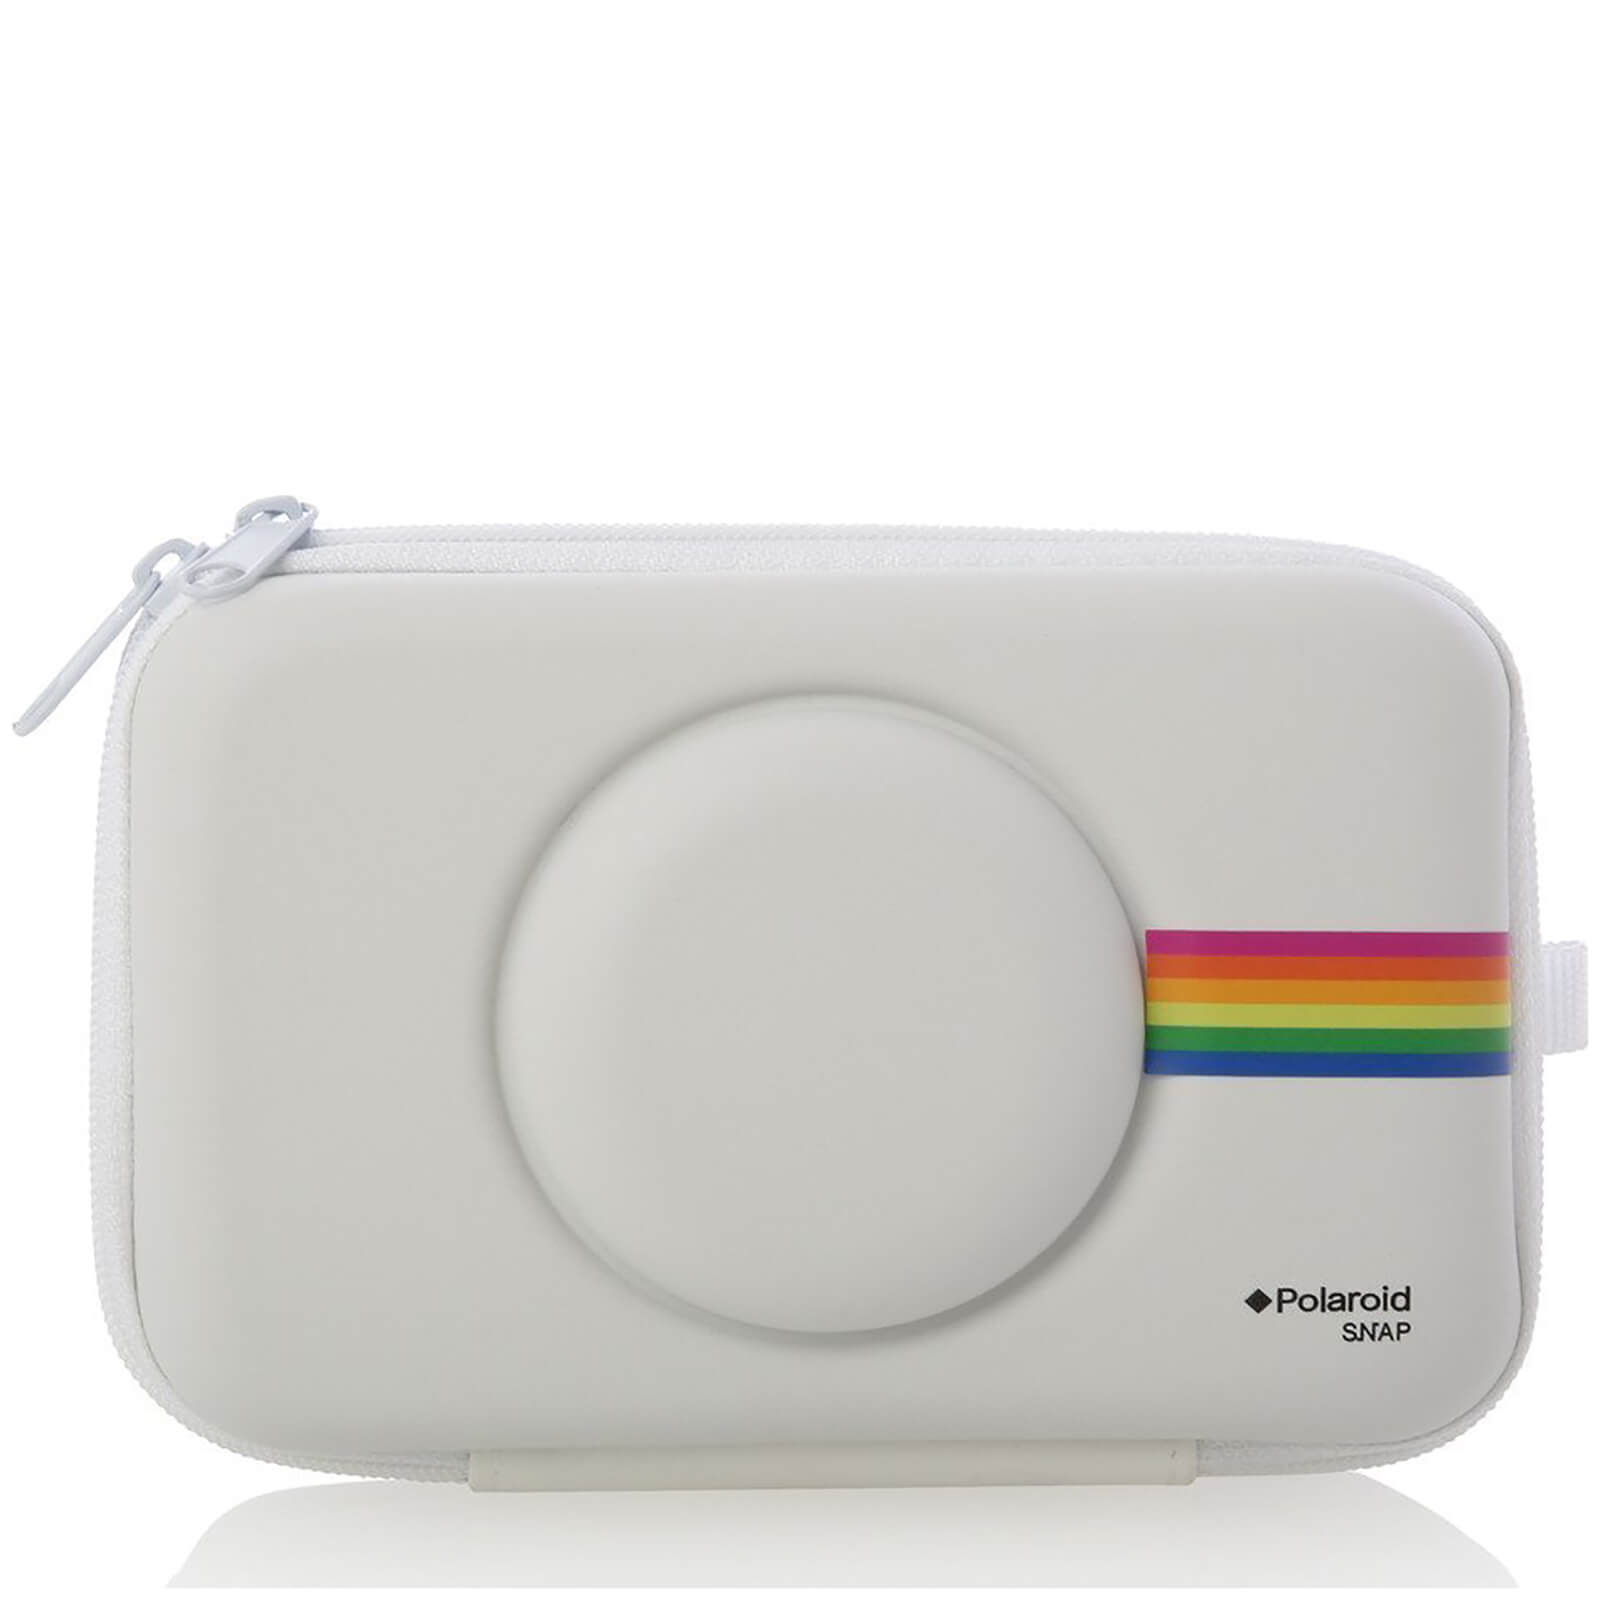 Polaroid EVA Case (For Snap Instant Digital Print Camera) - White